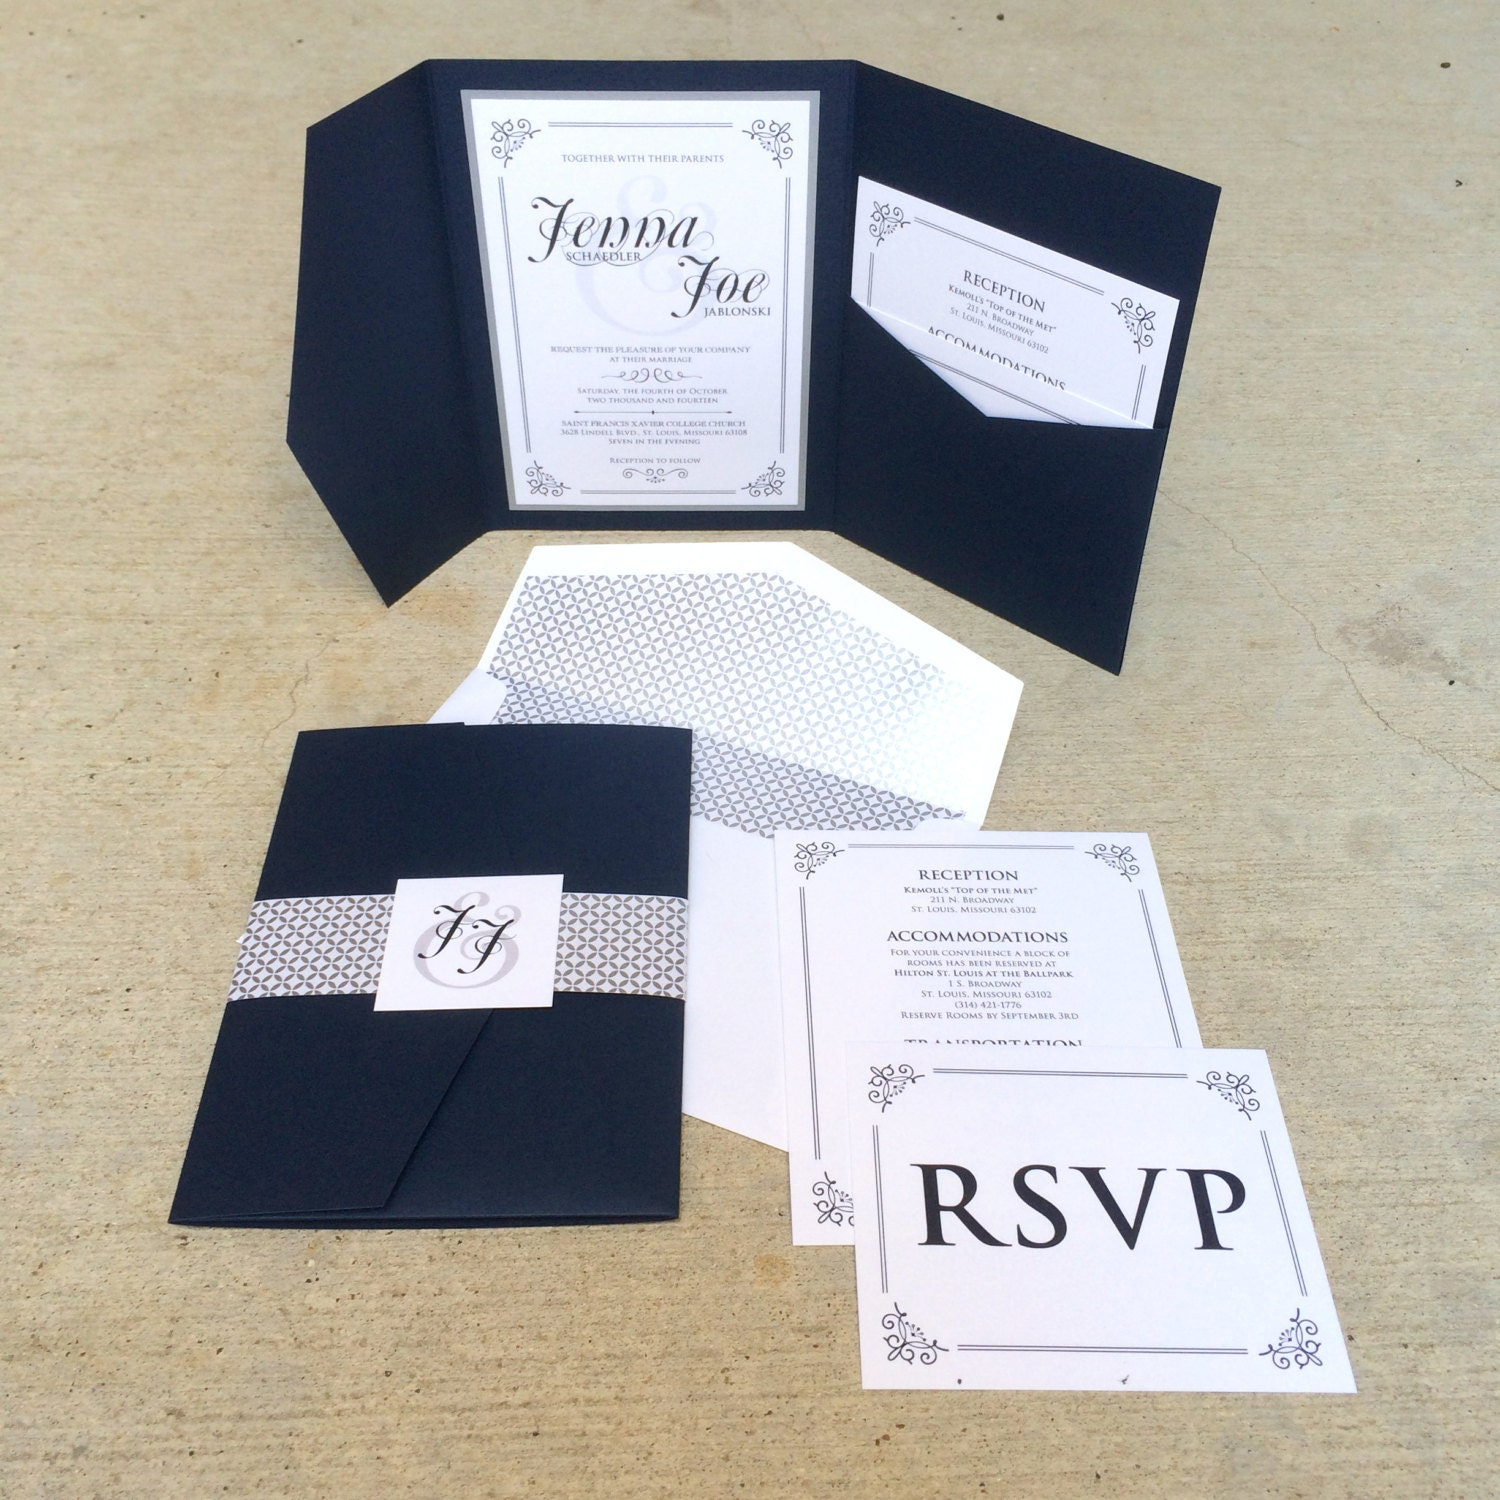 Sample 5x7 navy and silver vintage pocket wedding invitation with sample 5x7 navy and silver vintage pocket wedding invitation with envelope liner enclosure band monogram with details and rsvp inserts stopboris Choice Image